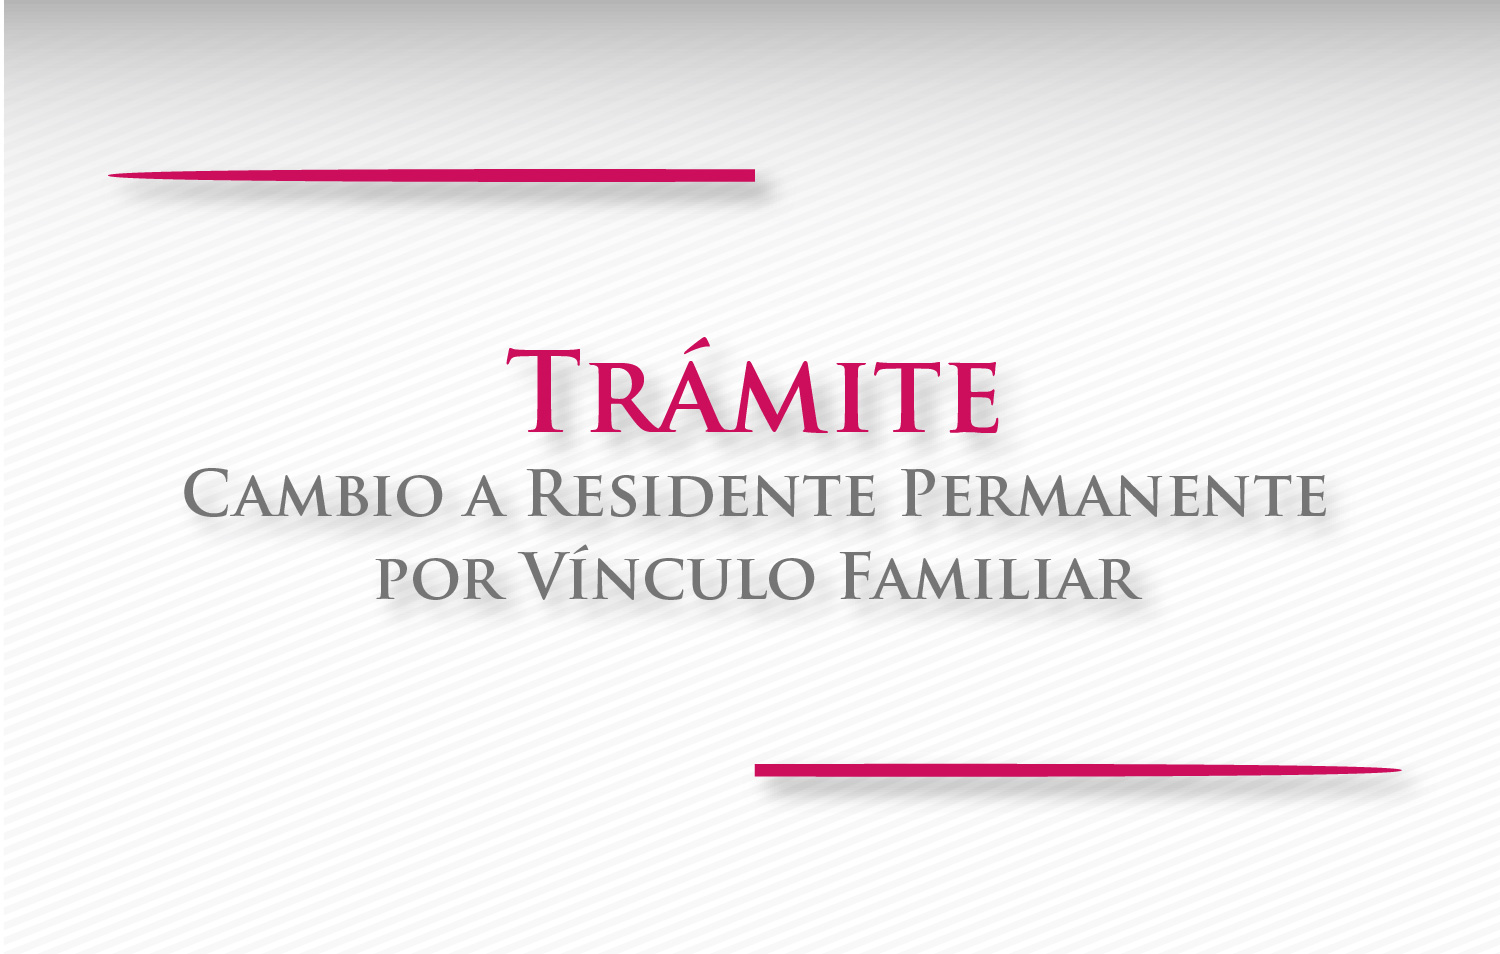 Residente Permanente por Vínculo Familiar